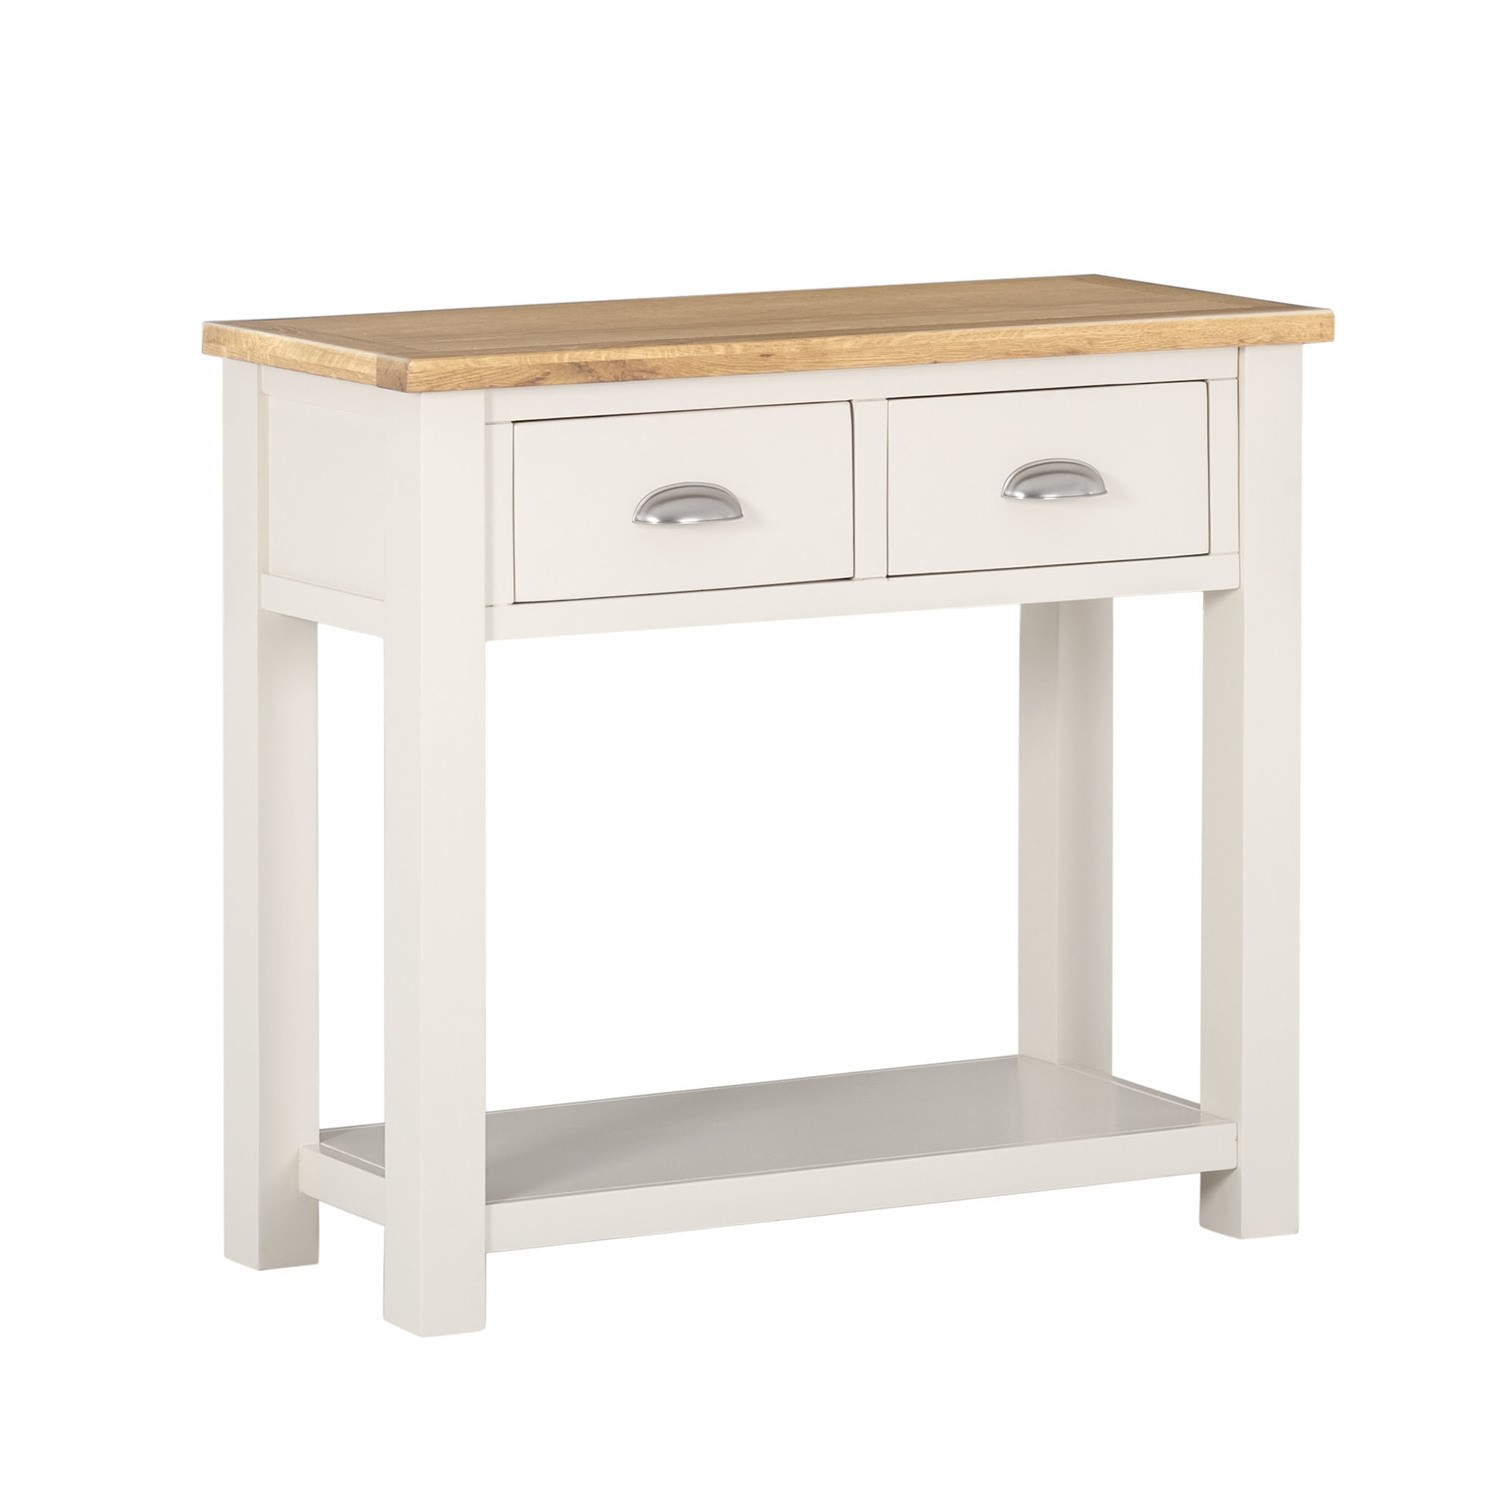 Amazing Details About Willow Narrow Console Table In Two Tone Cream Oak With Drawers Wil004 Pabps2019 Chair Design Images Pabps2019Com